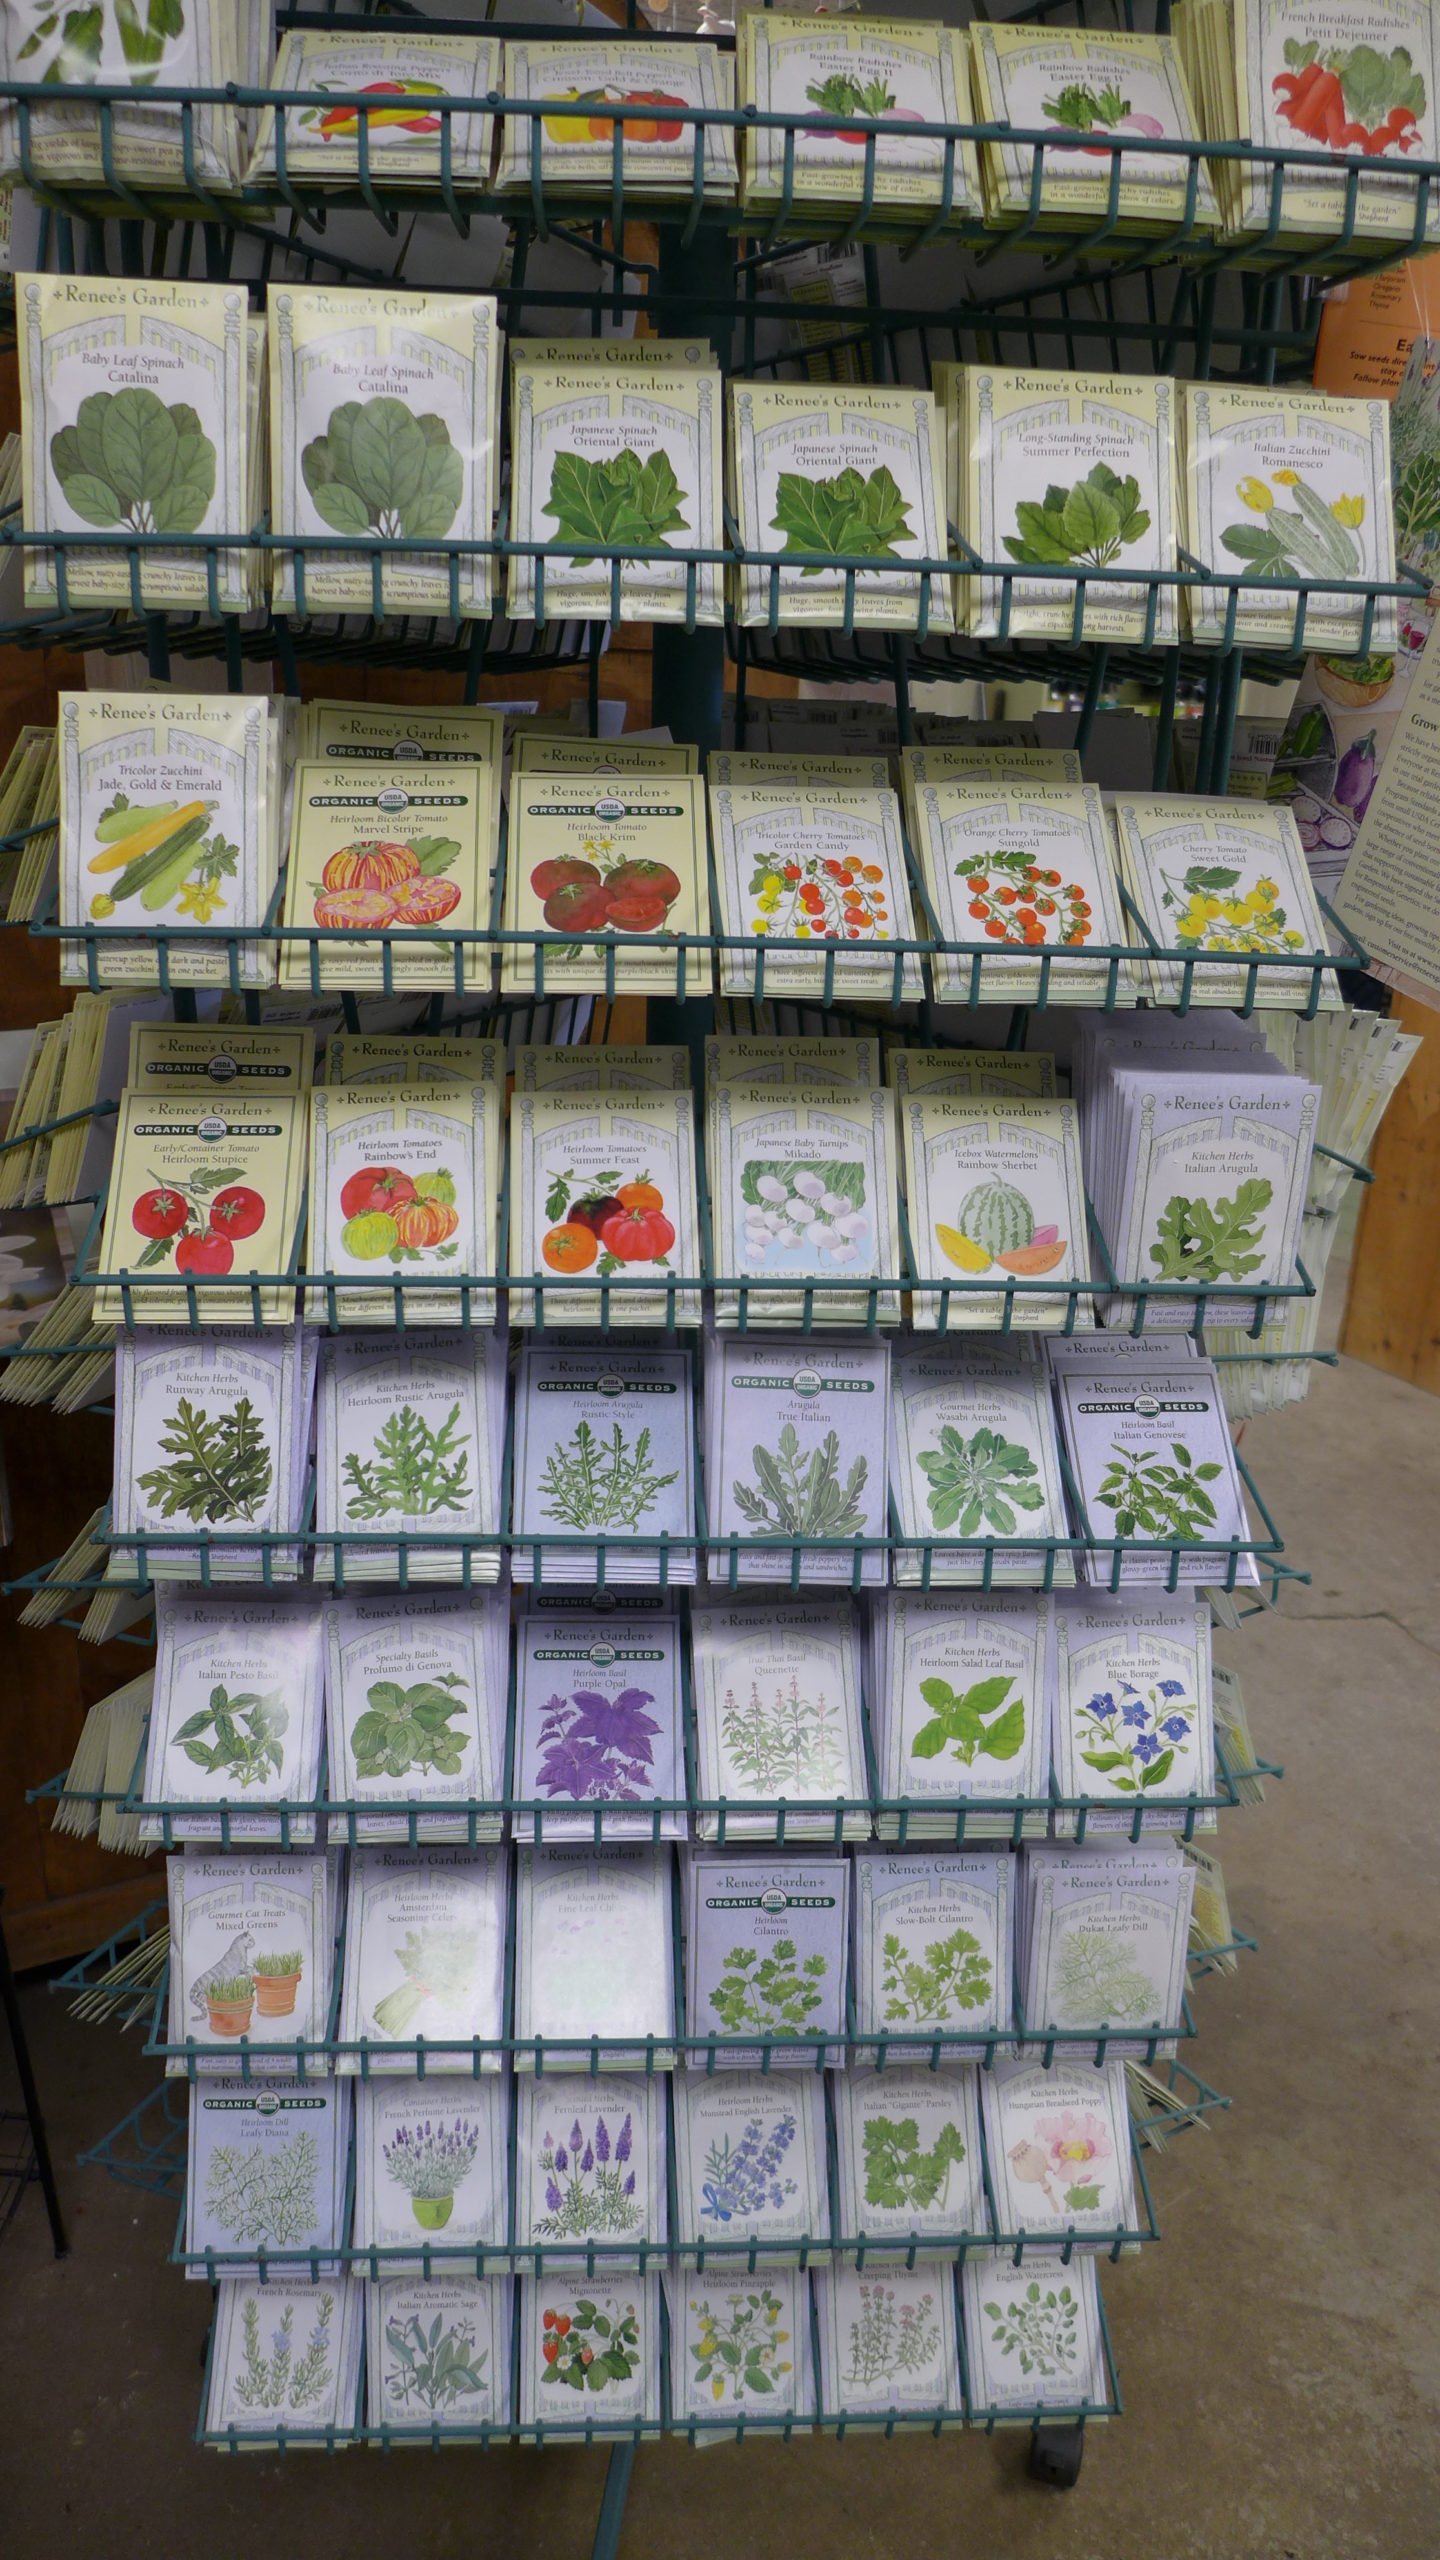 Most garden centers will have their seed racks out in early March. Shop brand names like Burpee, Johnny's, Renee's and others. If you're not familiar with the brand, as you may find on some discount outlets, maybe pass them up?